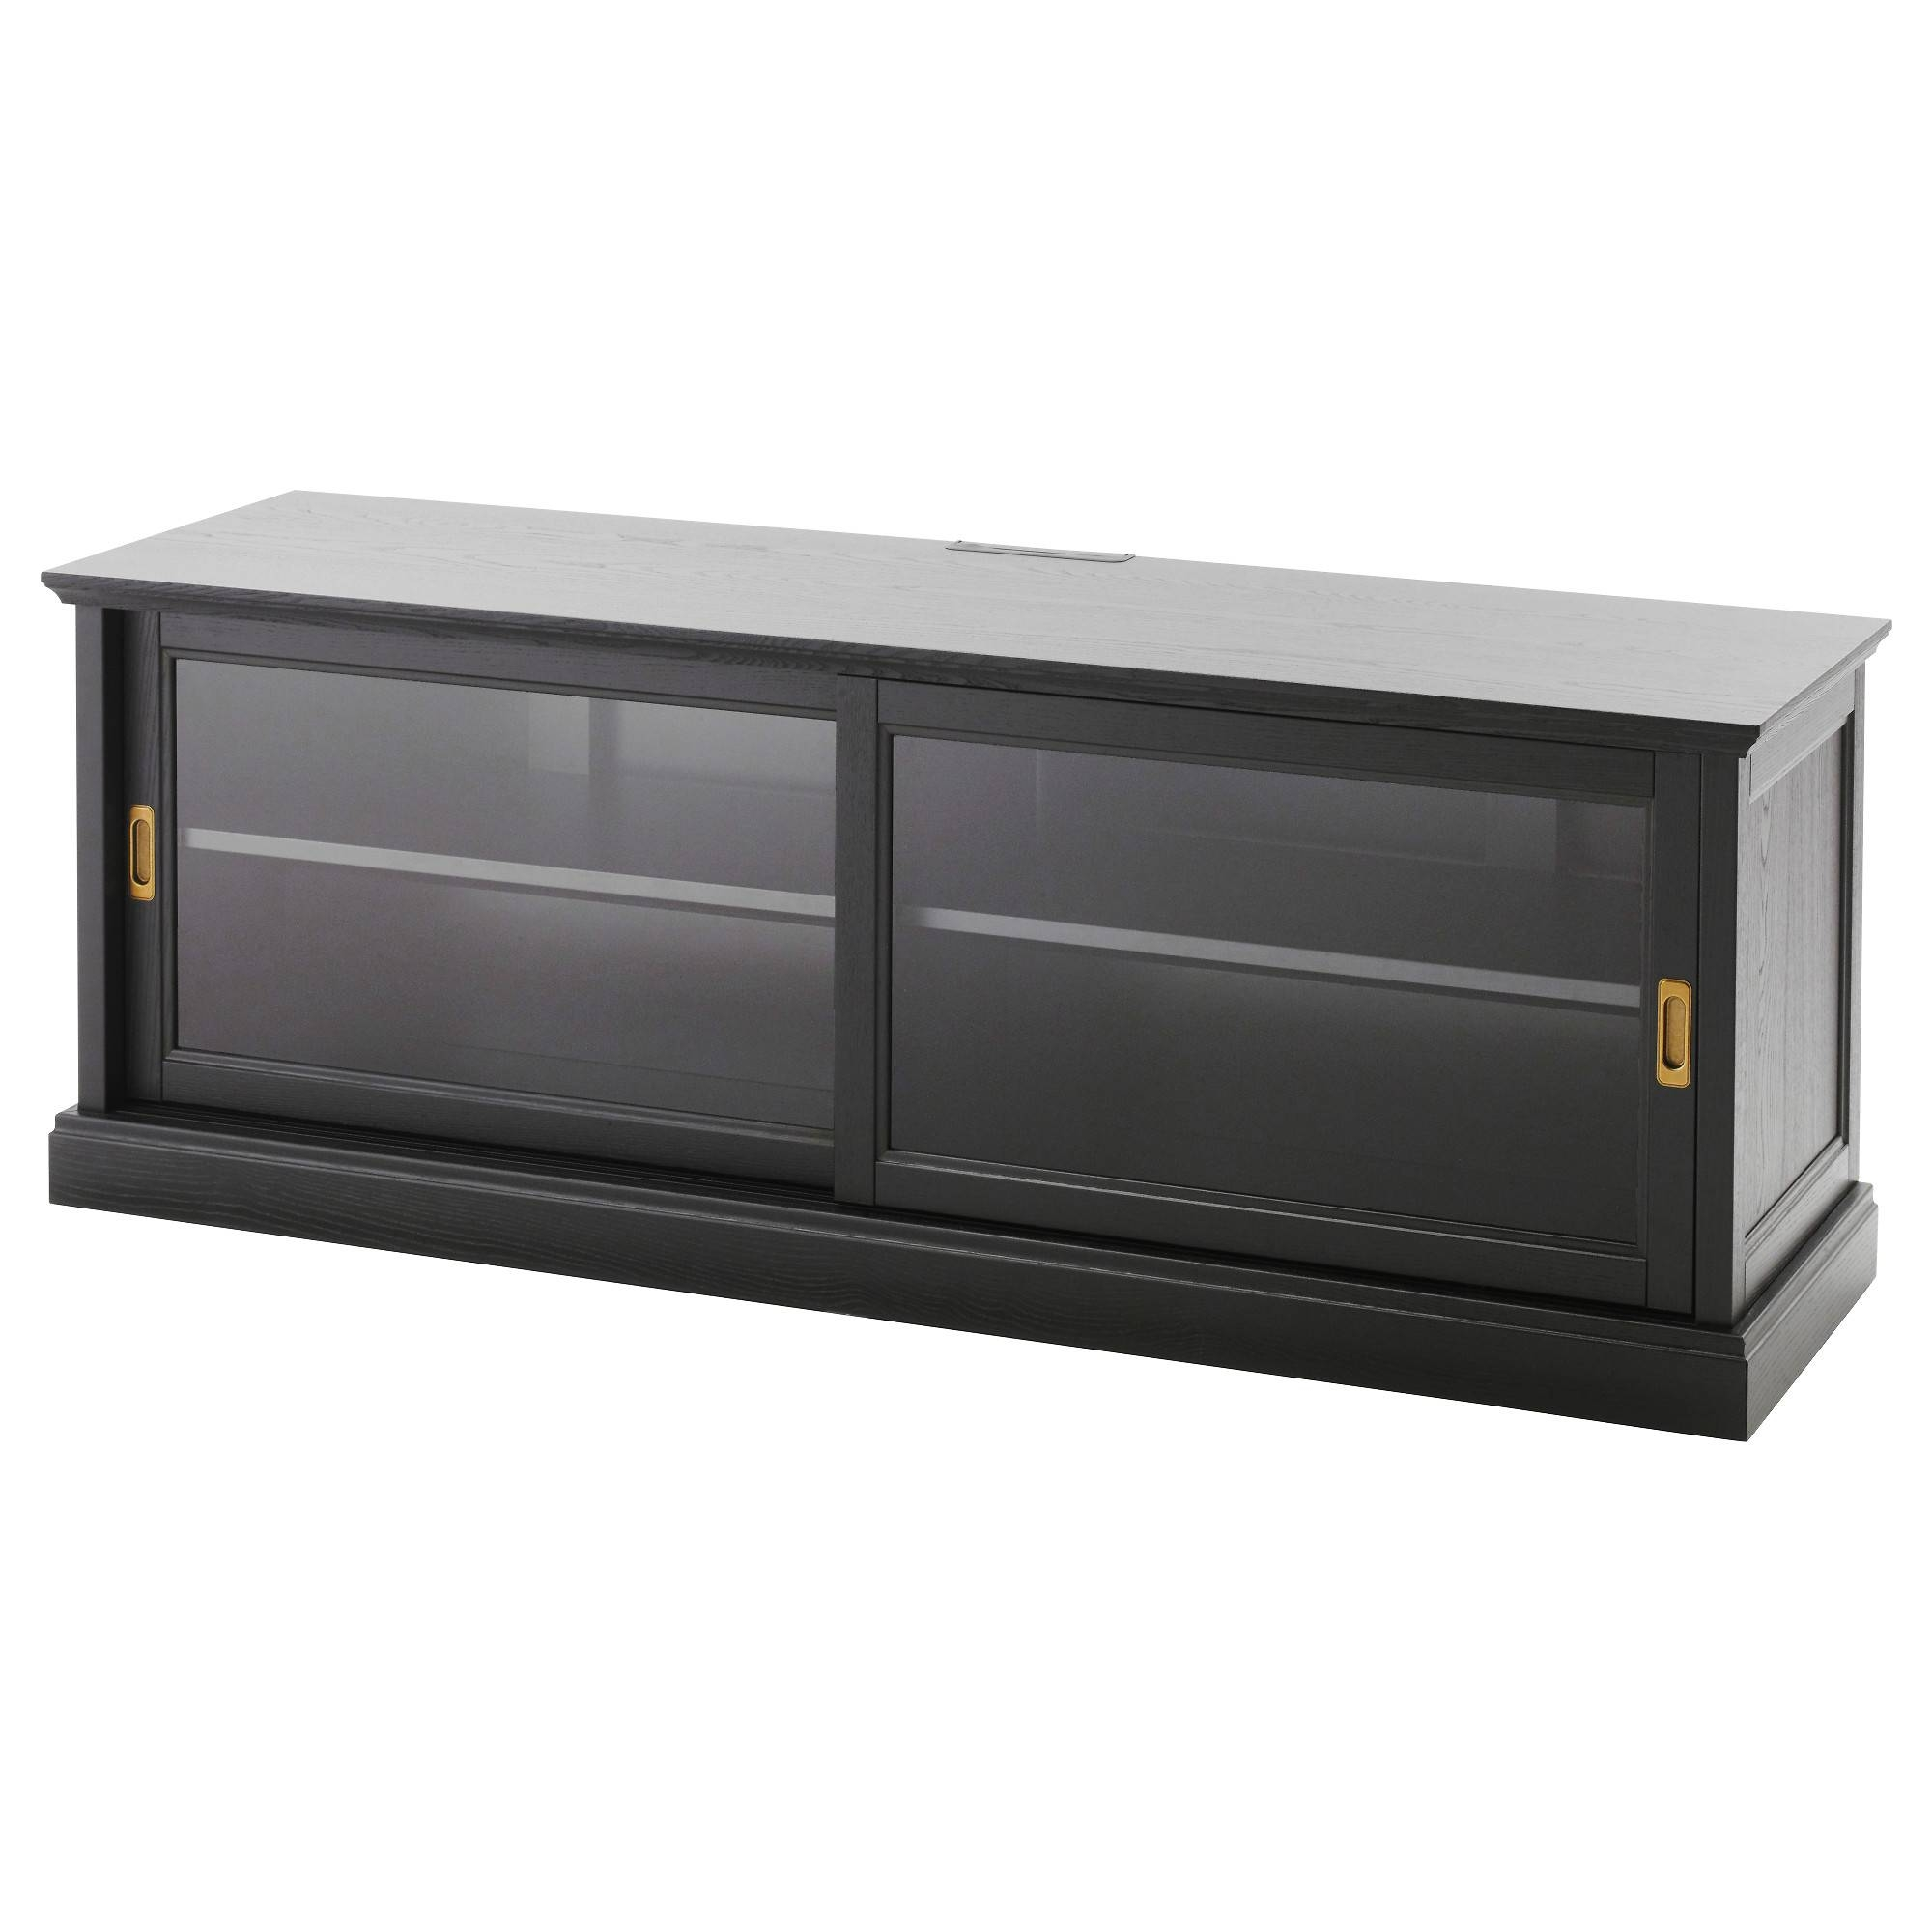 Malsjö Tv Bench With Sliding Doors Black Stained 160X48 Cm - Ikea with Black Tv Cabinets With Doors (Image 12 of 15)